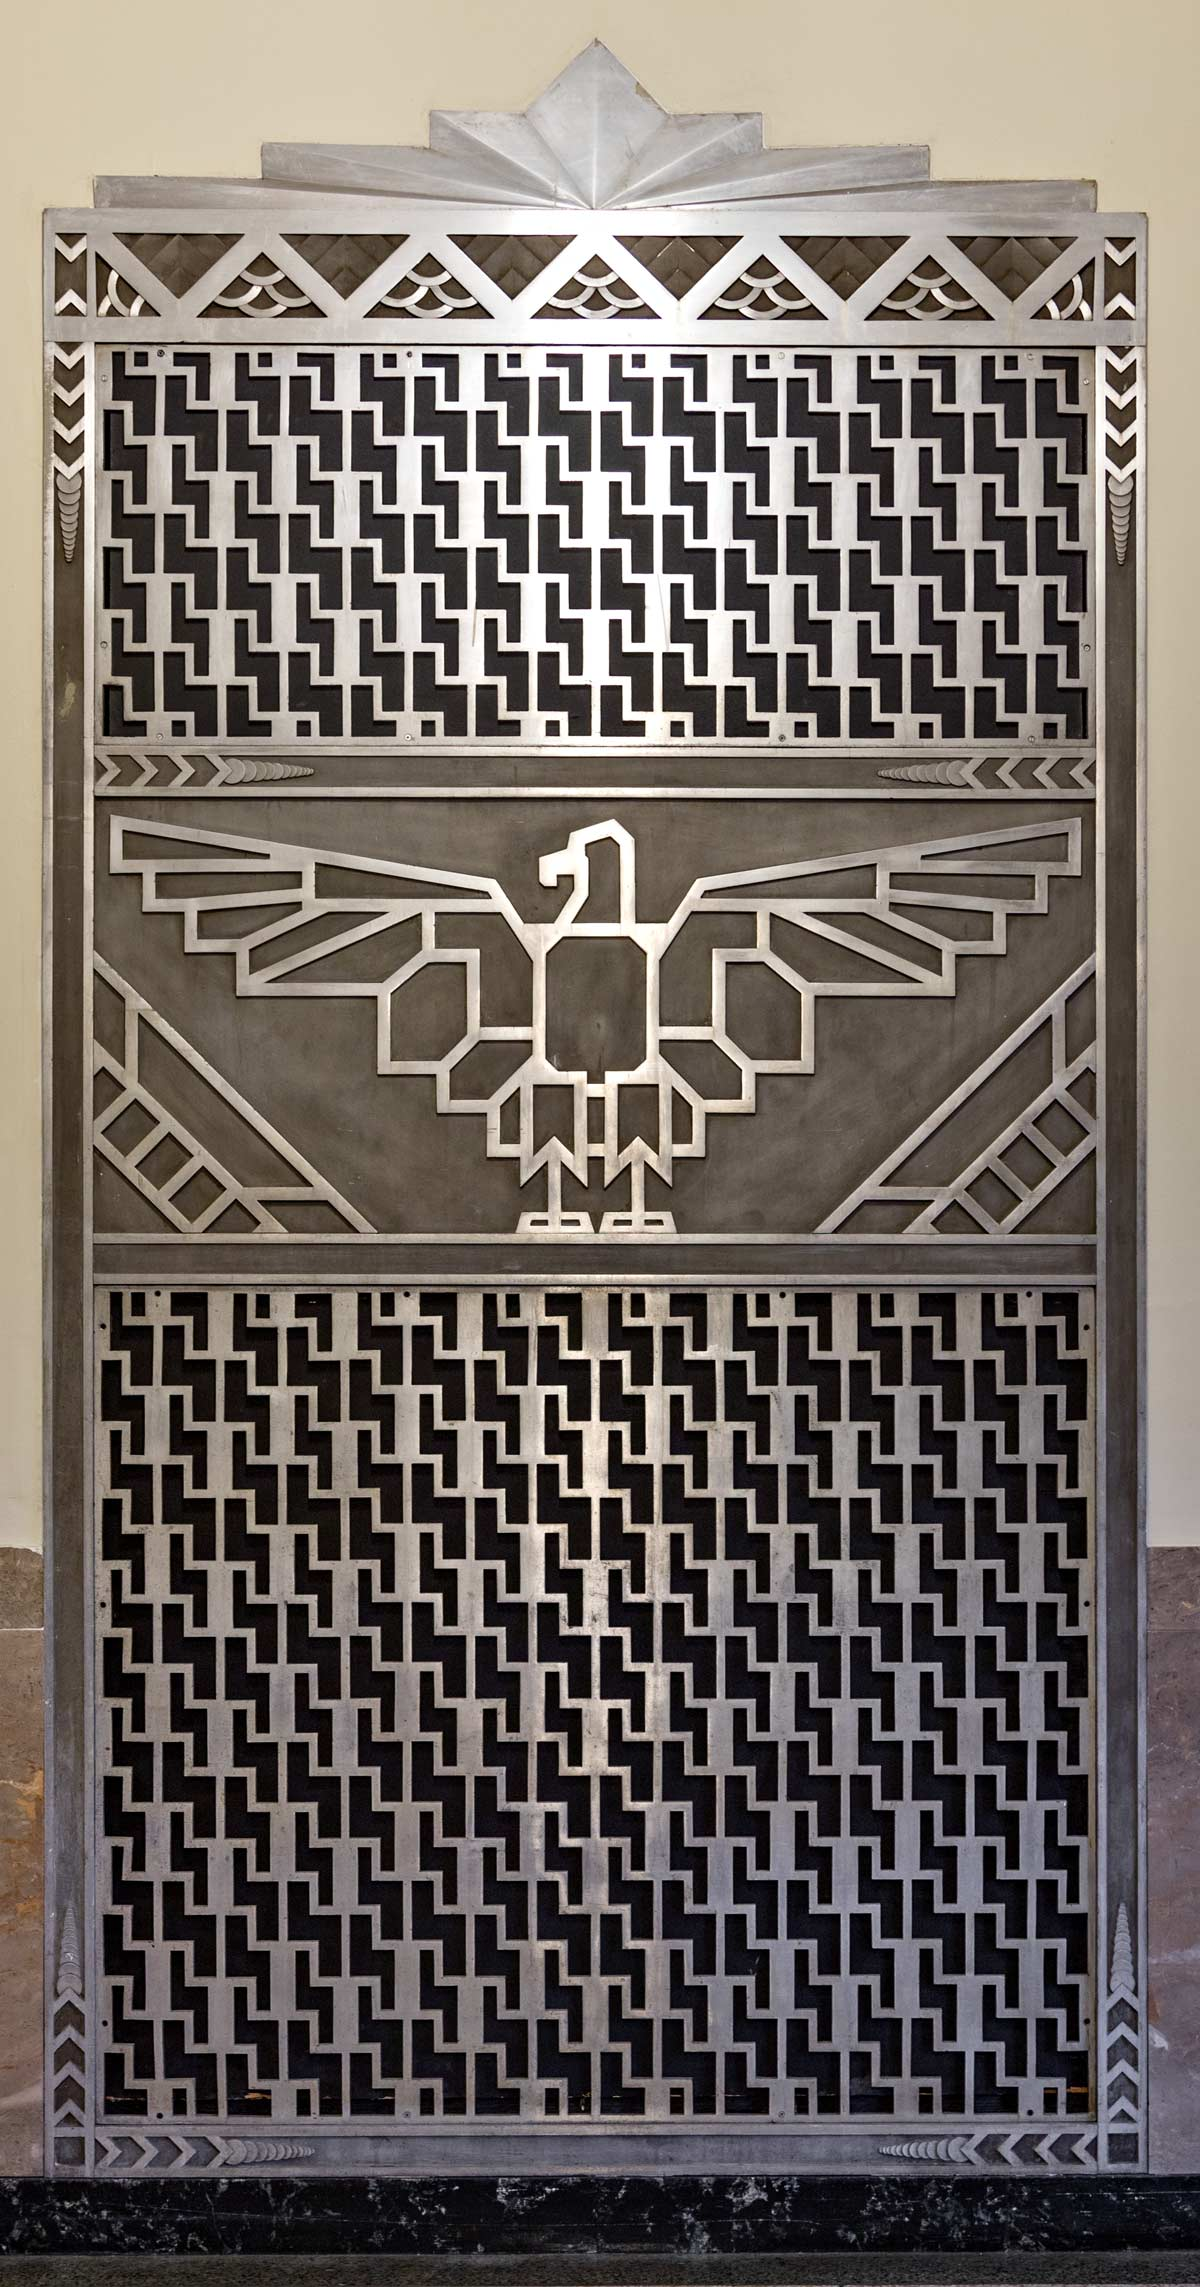 1934 Interior grill with eagle. Art Deco style Federal Building